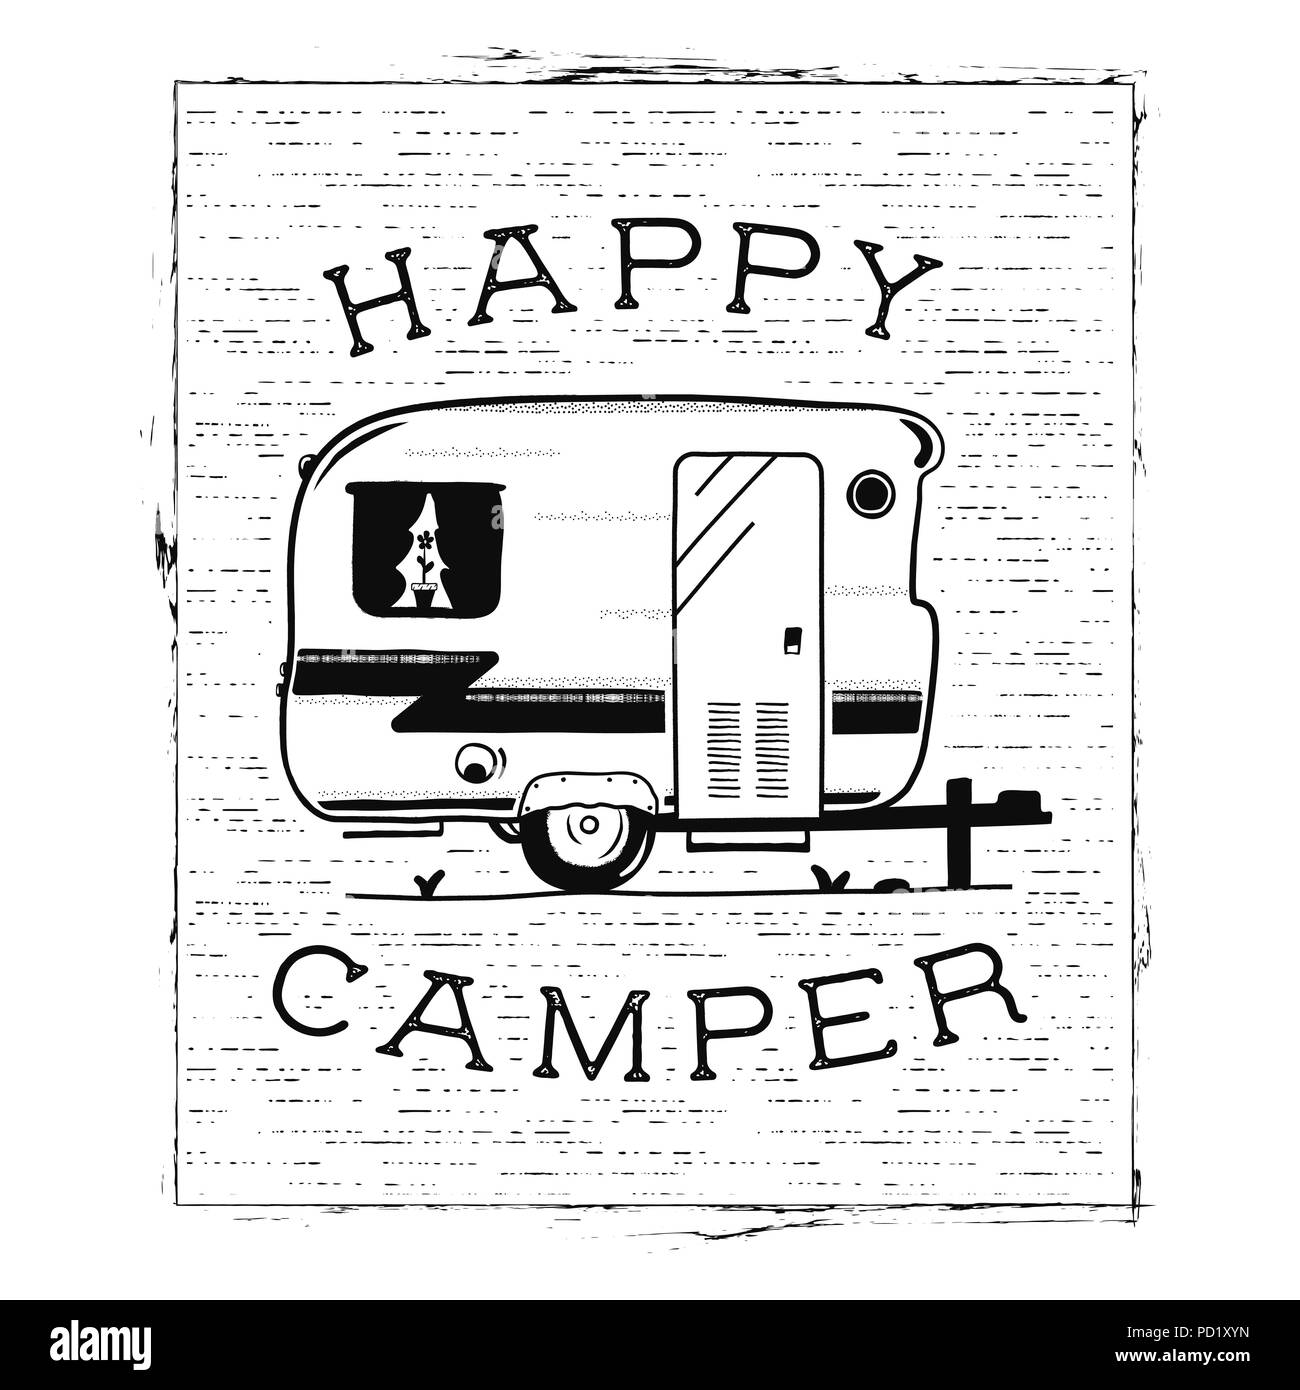 Happy Camper Trailer In Sketch Silhouette Style Vintage Hand Drawn Camp Rv